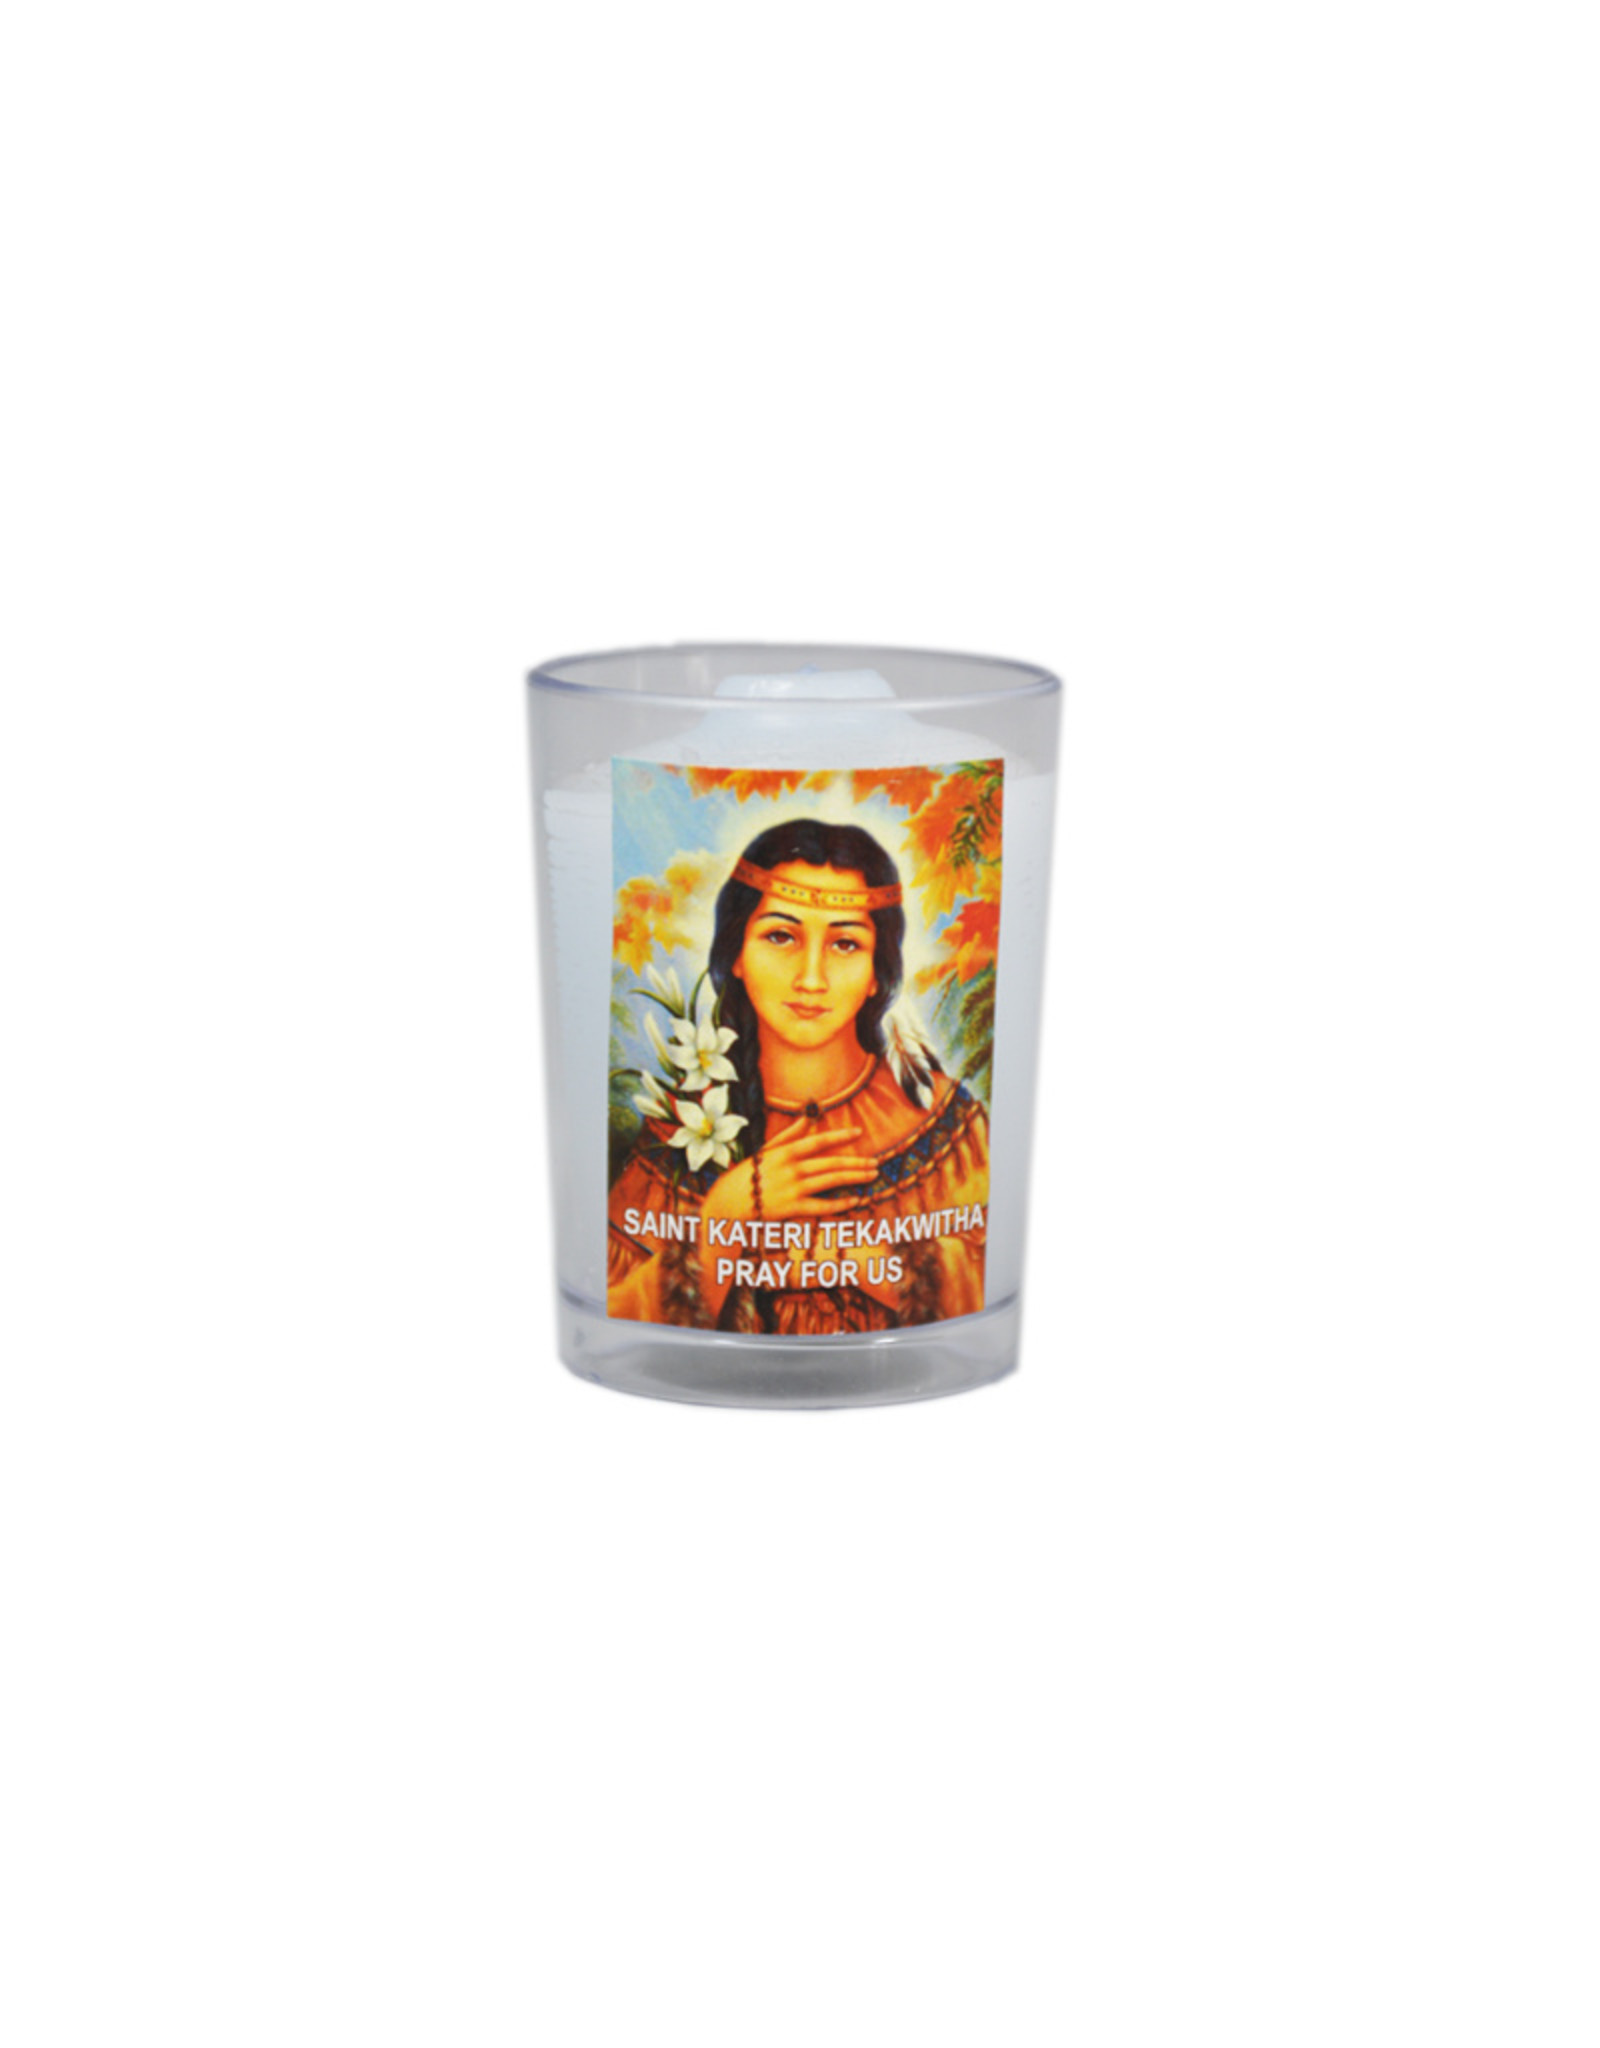 Chandelles Tradition / Tradition Candles Saint Kateri Tekakwitha votive candle